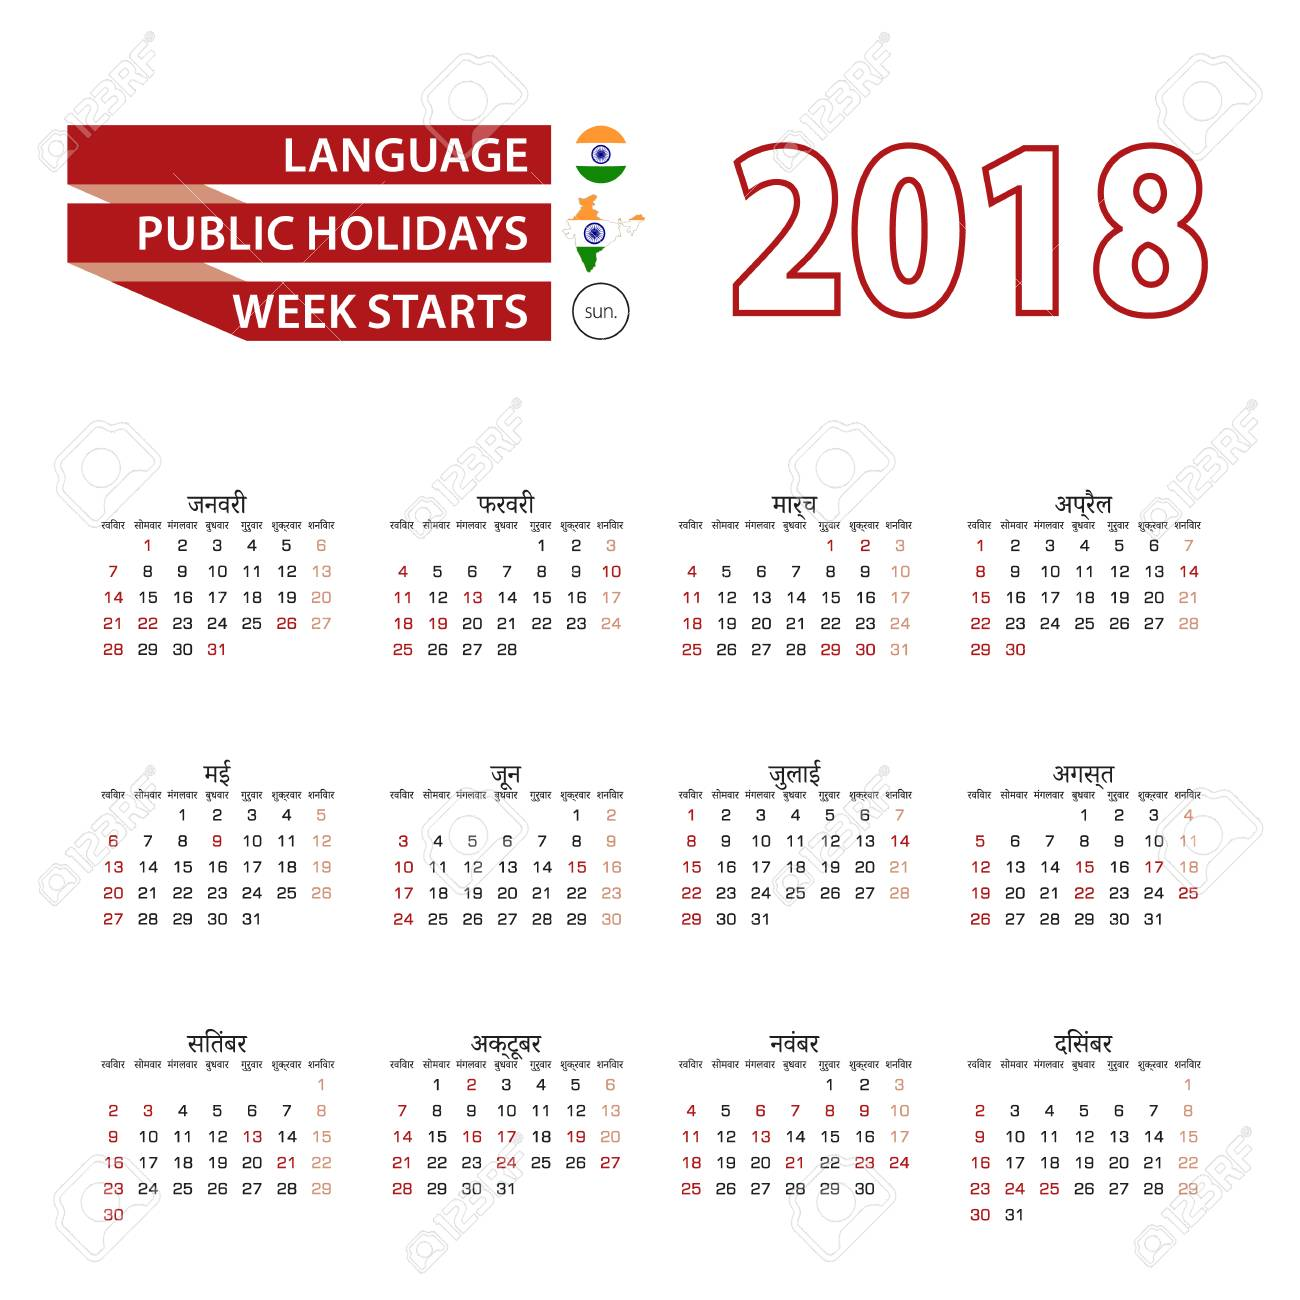 calendar 2018 in hindi language with public holidays the country of india in year 2018